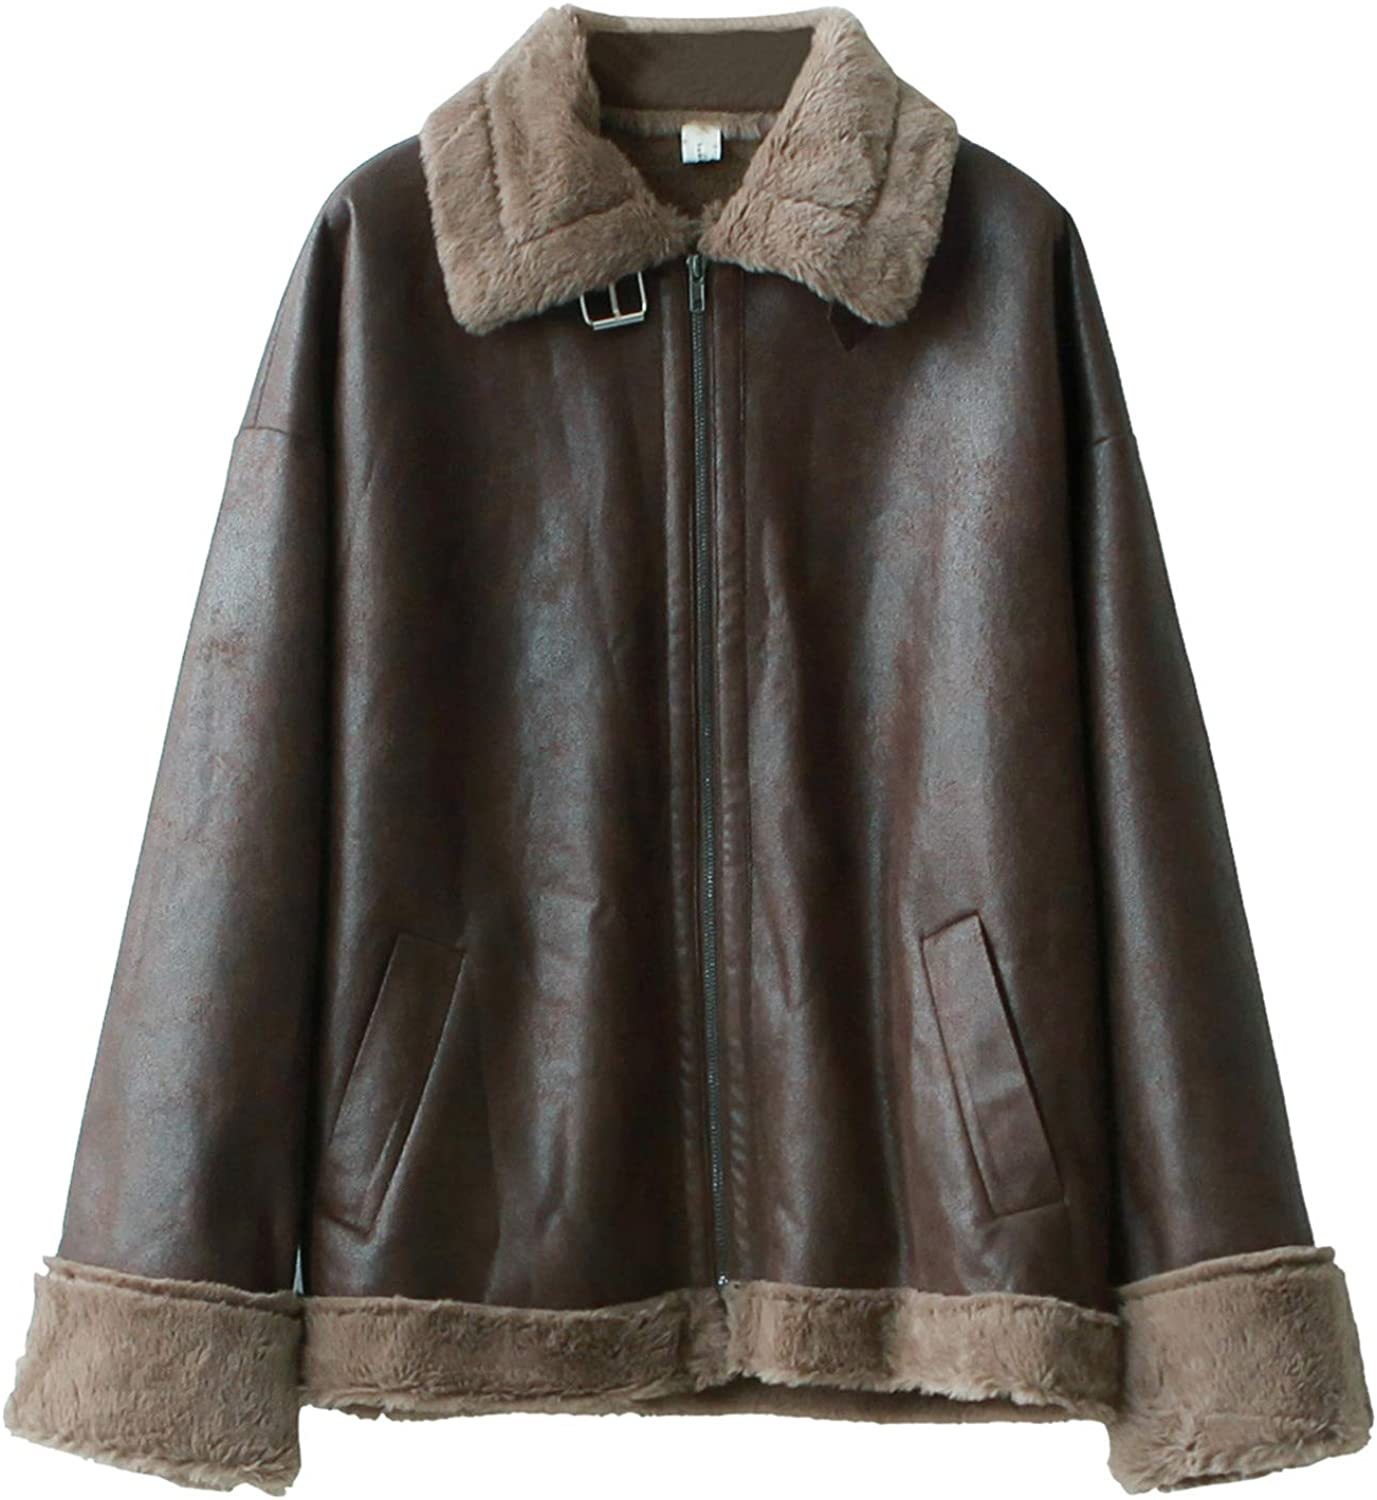 Yimoon Women's Faux Fur Lined Distressed PU Leather Moto Jacket